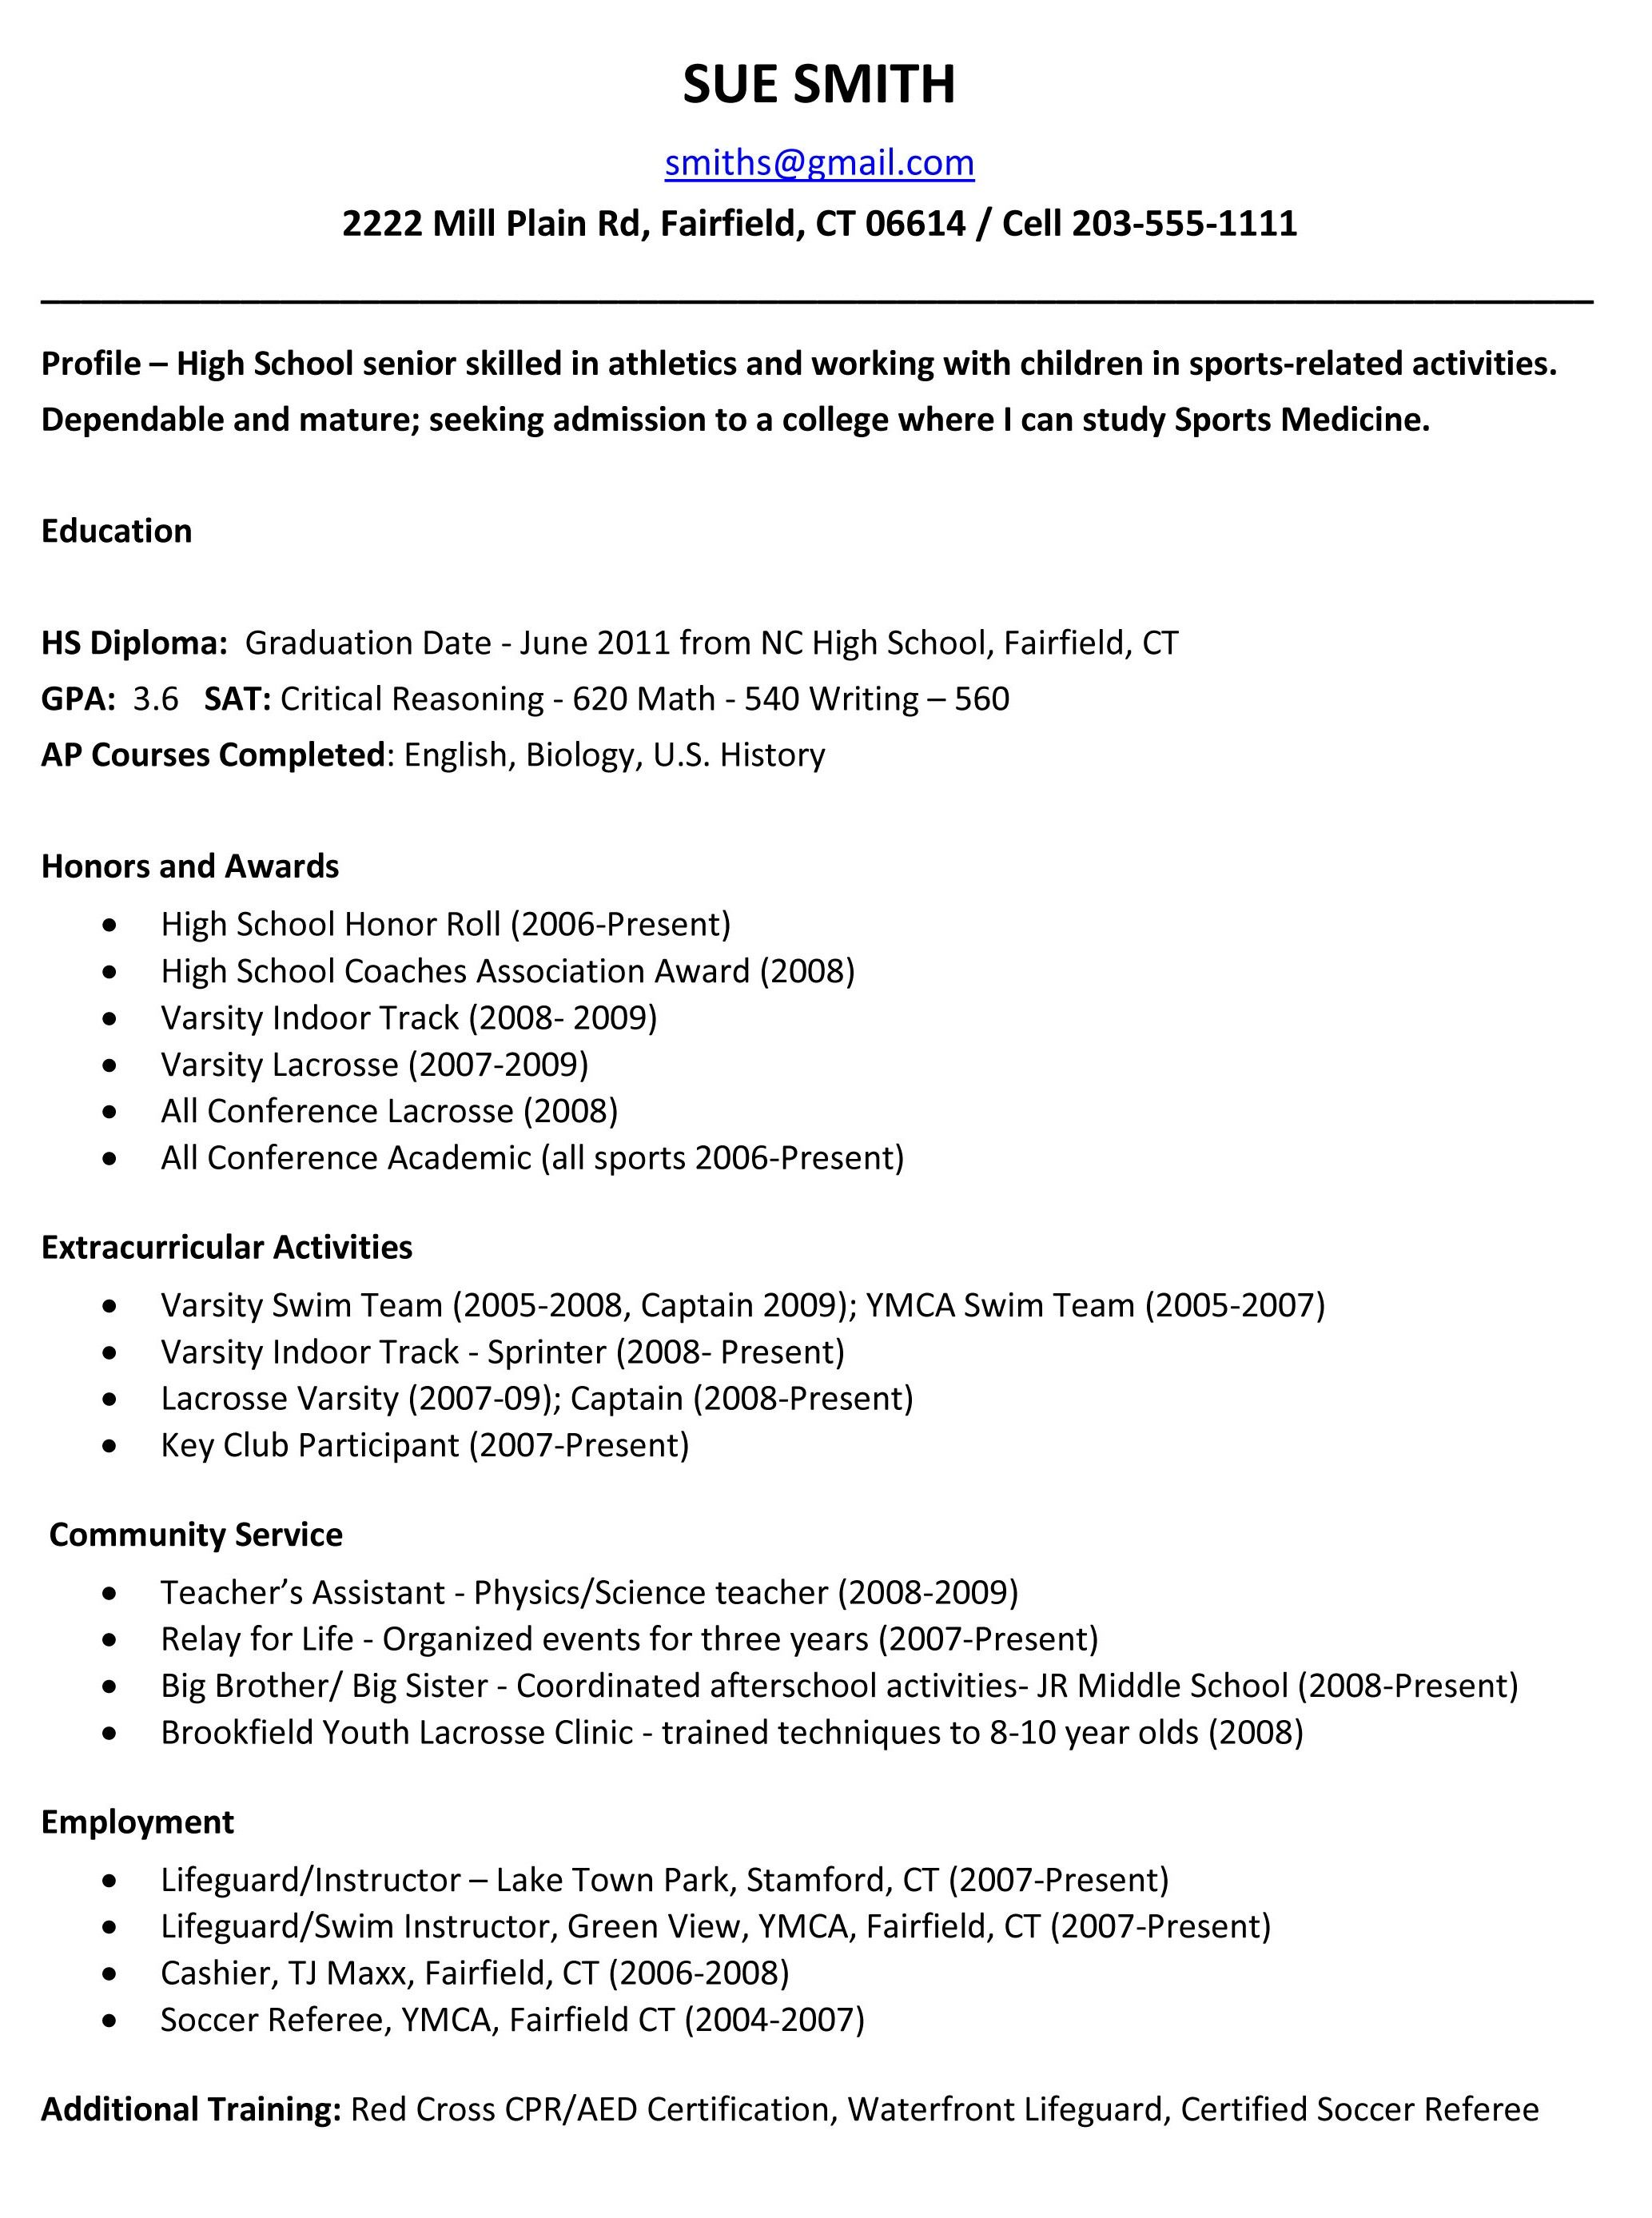 Resume Summary Examples For Highschool Students